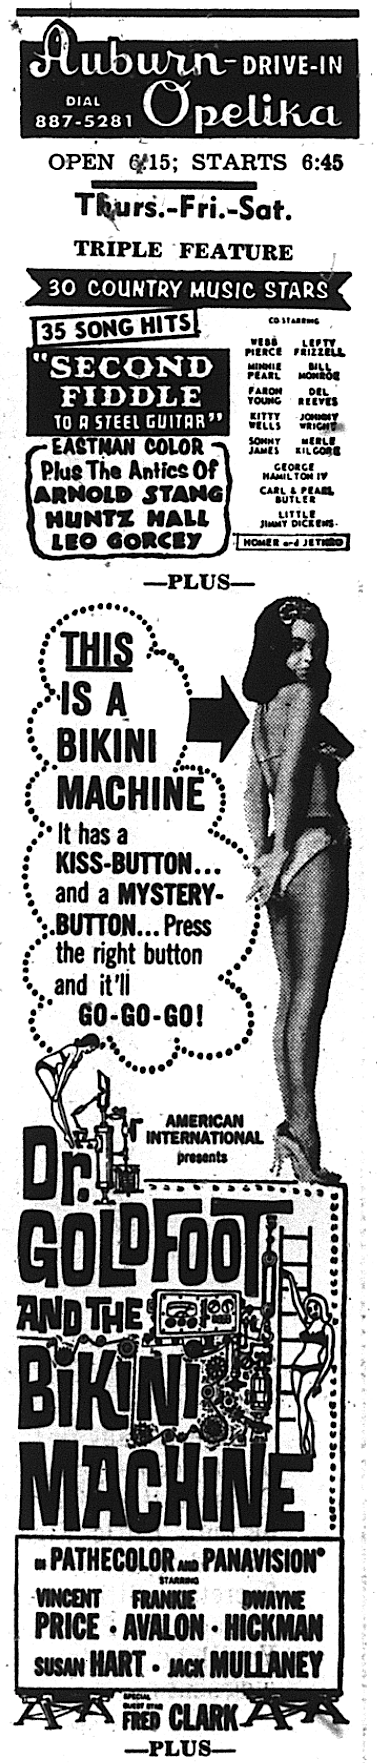 bikini machine ad crop 8.18.1966